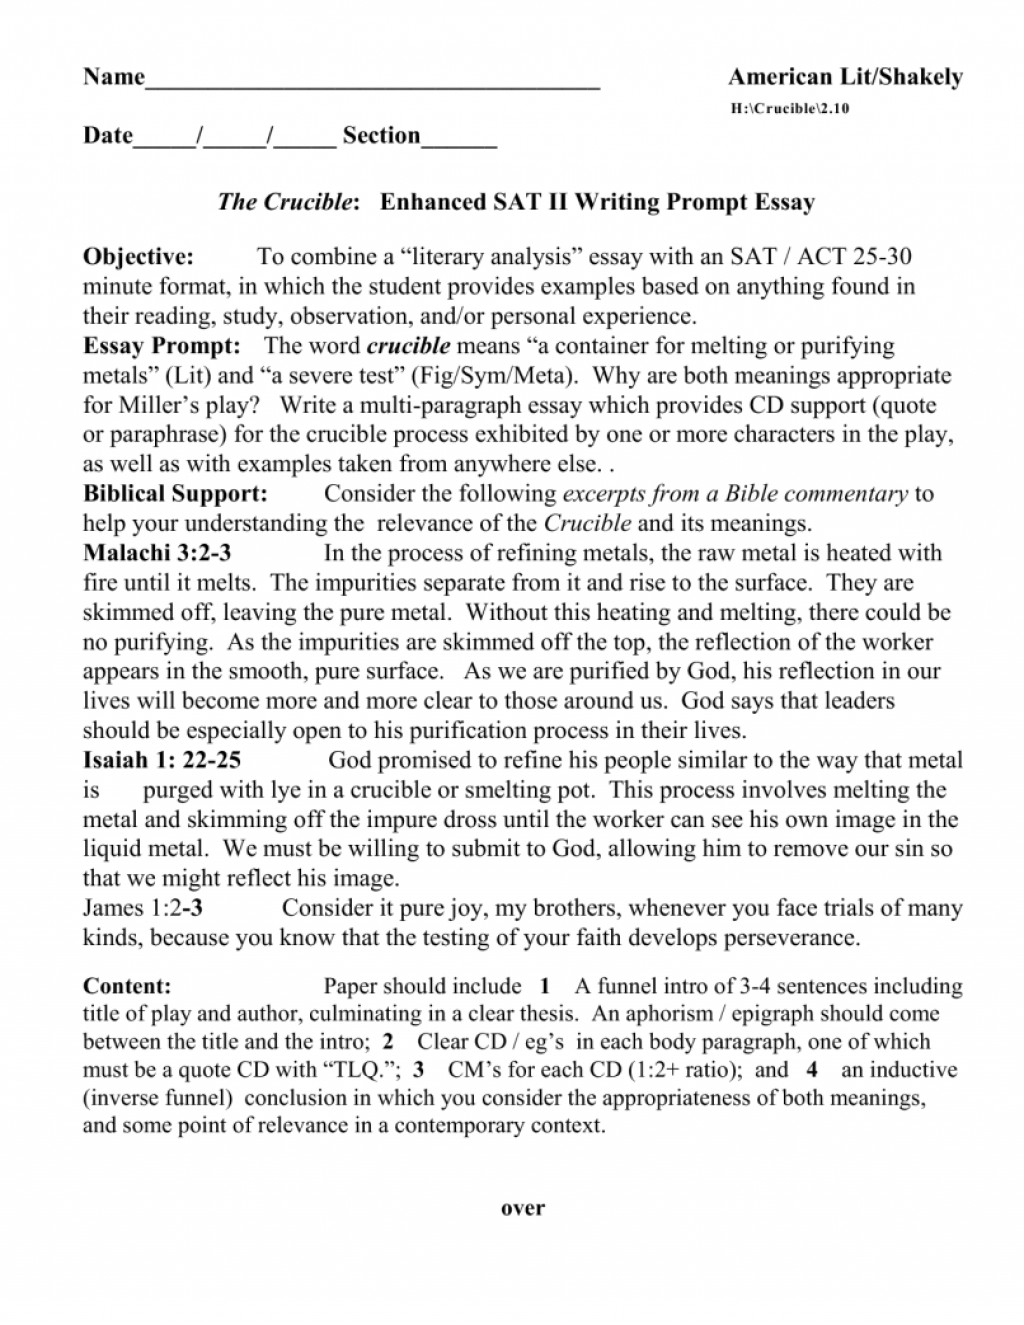 004 Ssat Essay Examples Poemdoc Or Writing Sample Prompts Example Sat Essays How To Get Perfect L Prompt New Stirring Write A Killer Pdf Conclusion Large